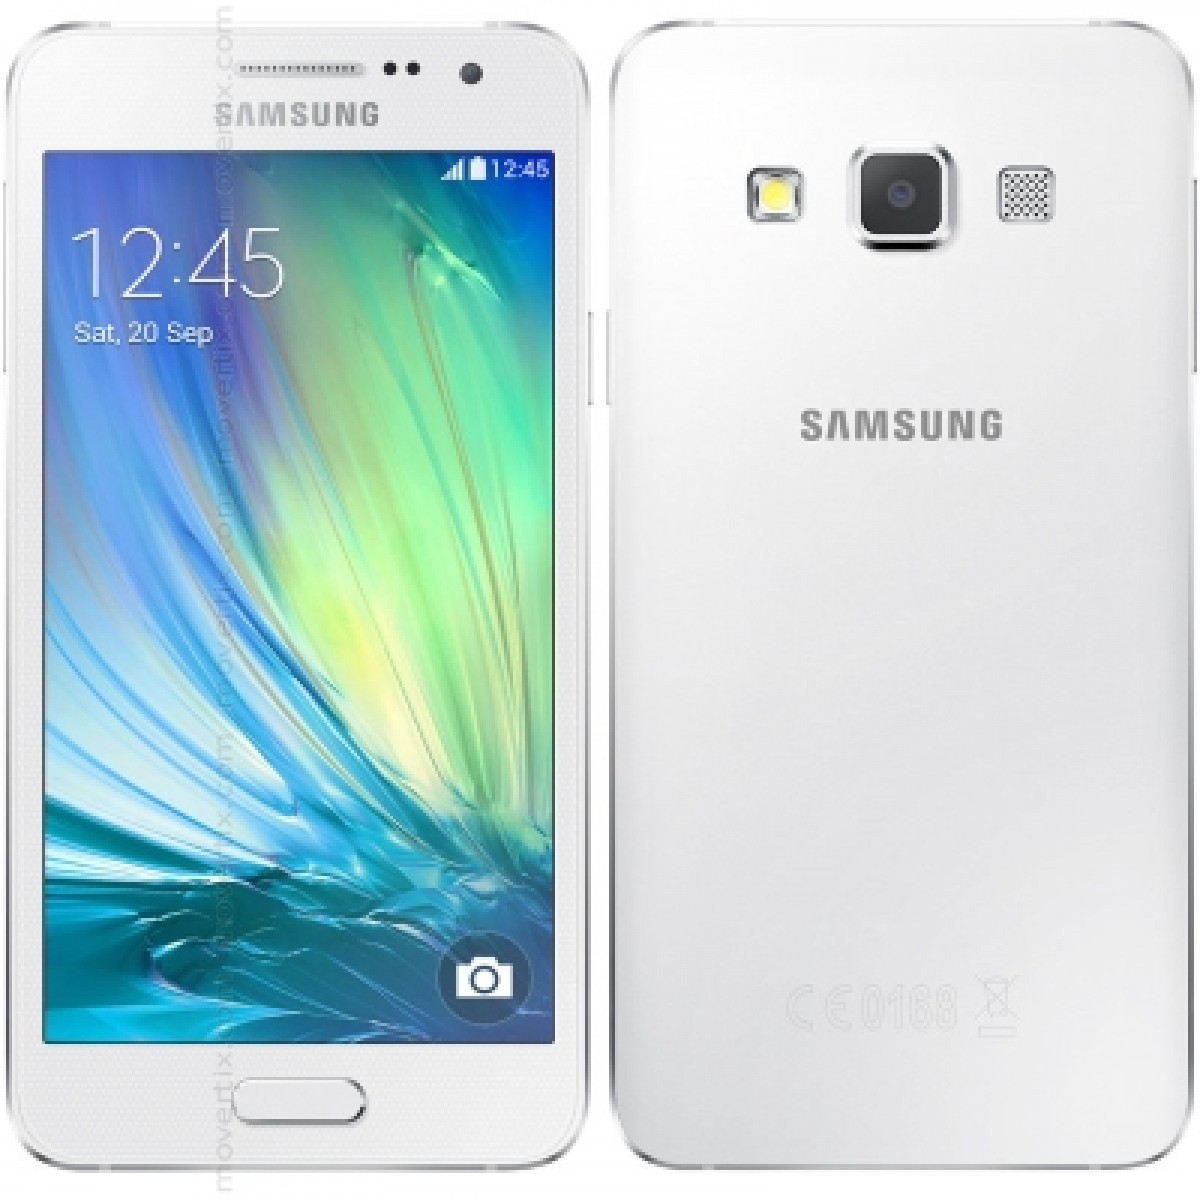 Enjoy The Galaxy A7 With 16 GB In White Color A Smartphone That Consolidates Samsungs High End And Becomes Jewel Of Crown